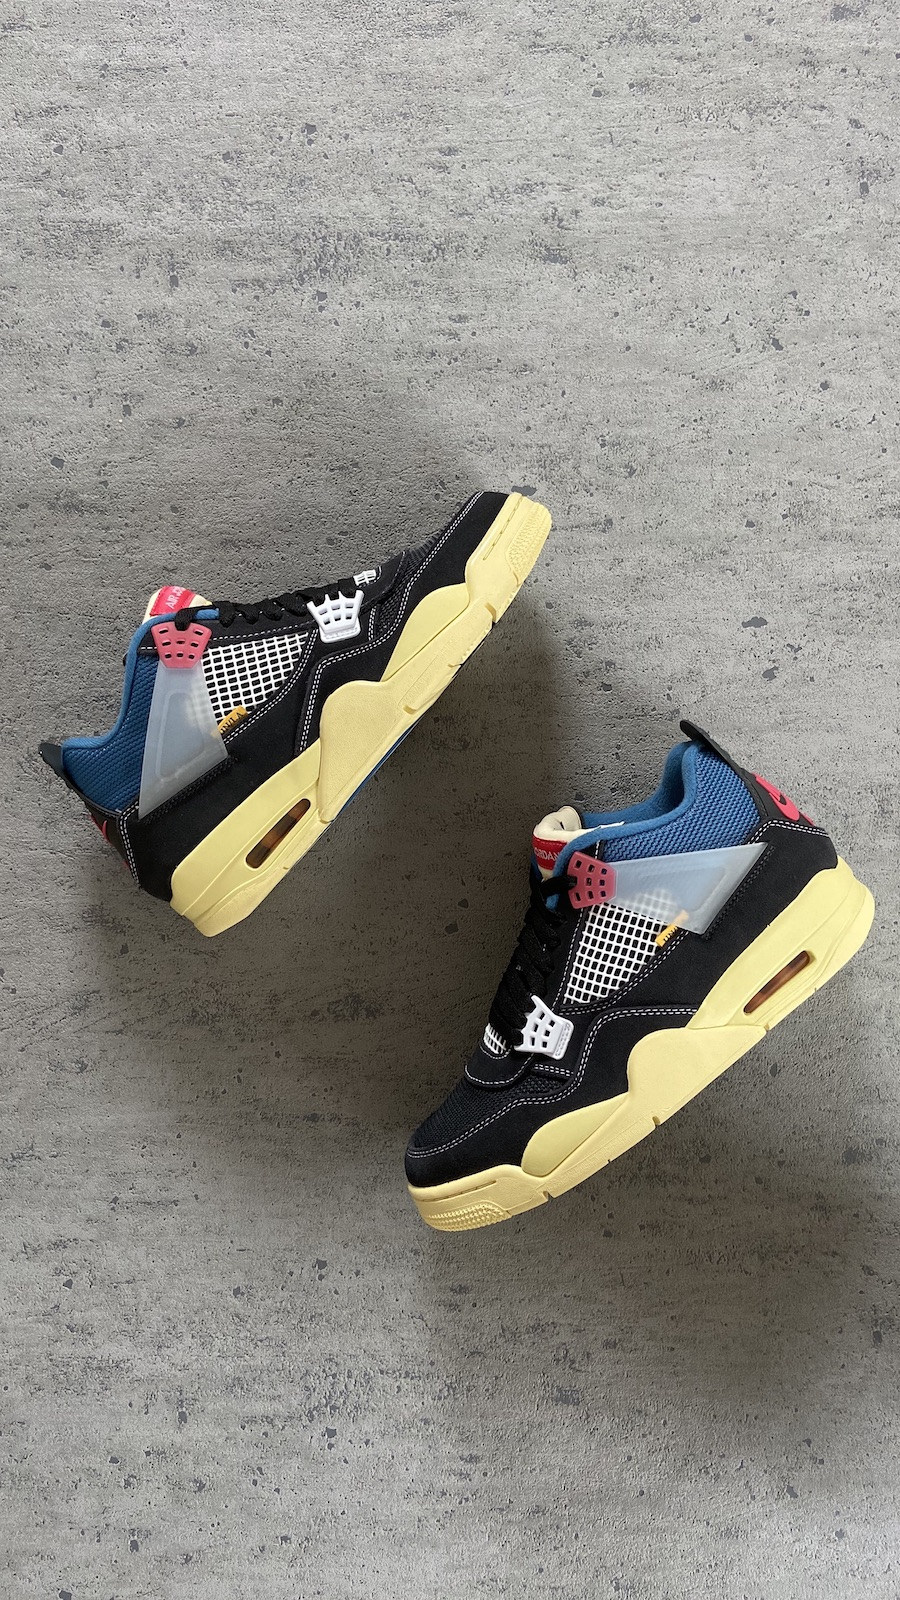 Nike Air Jordan IV x Union LA